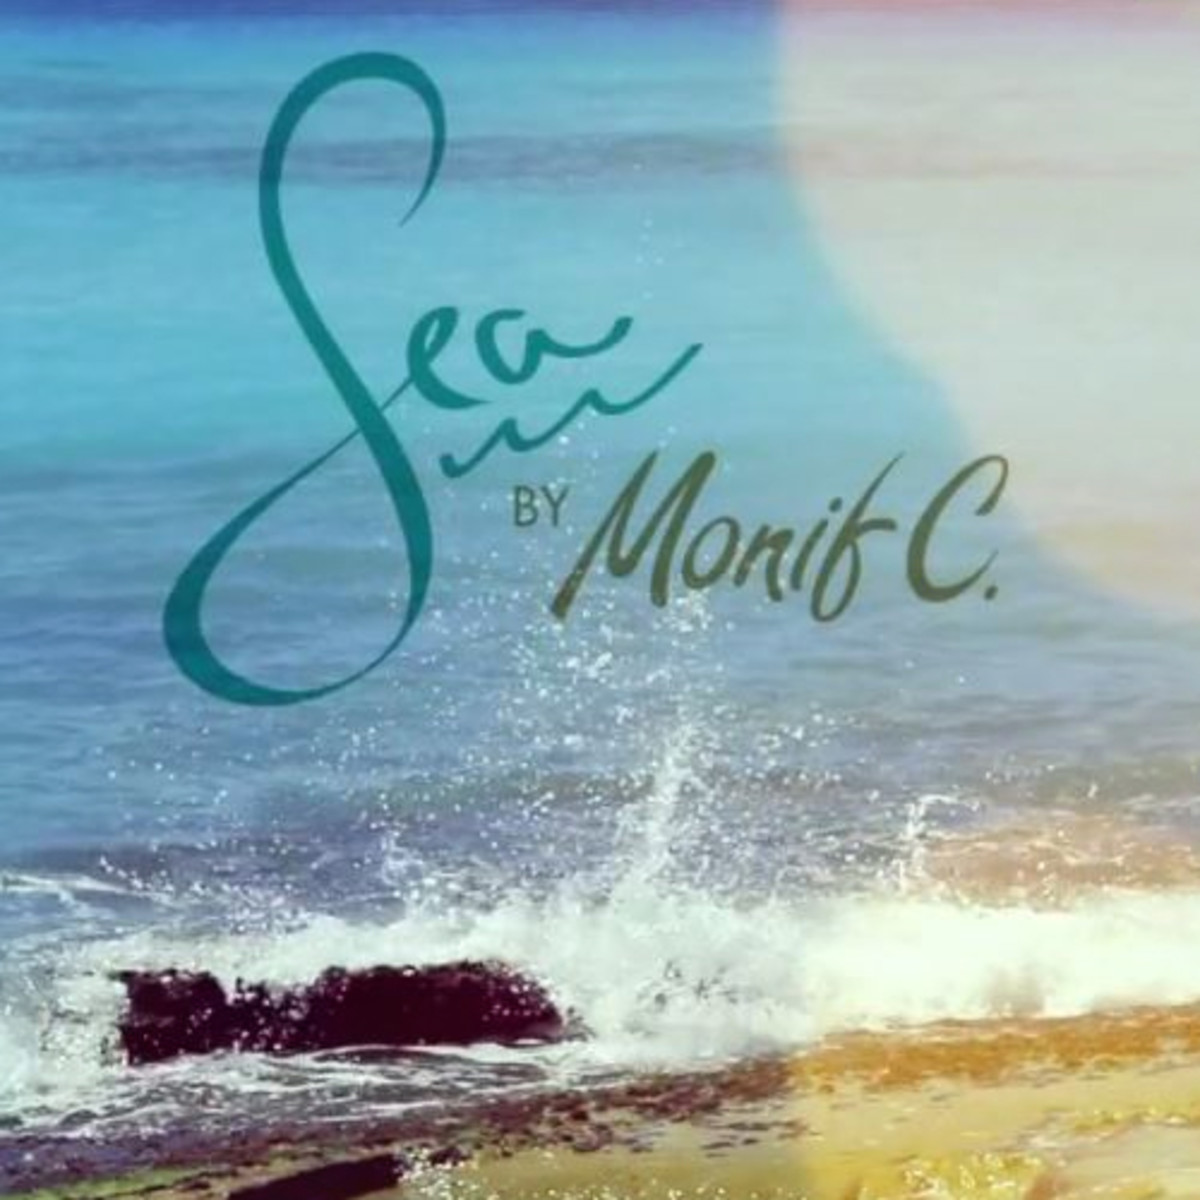 monifc-ig-sea-video-022615.jpg